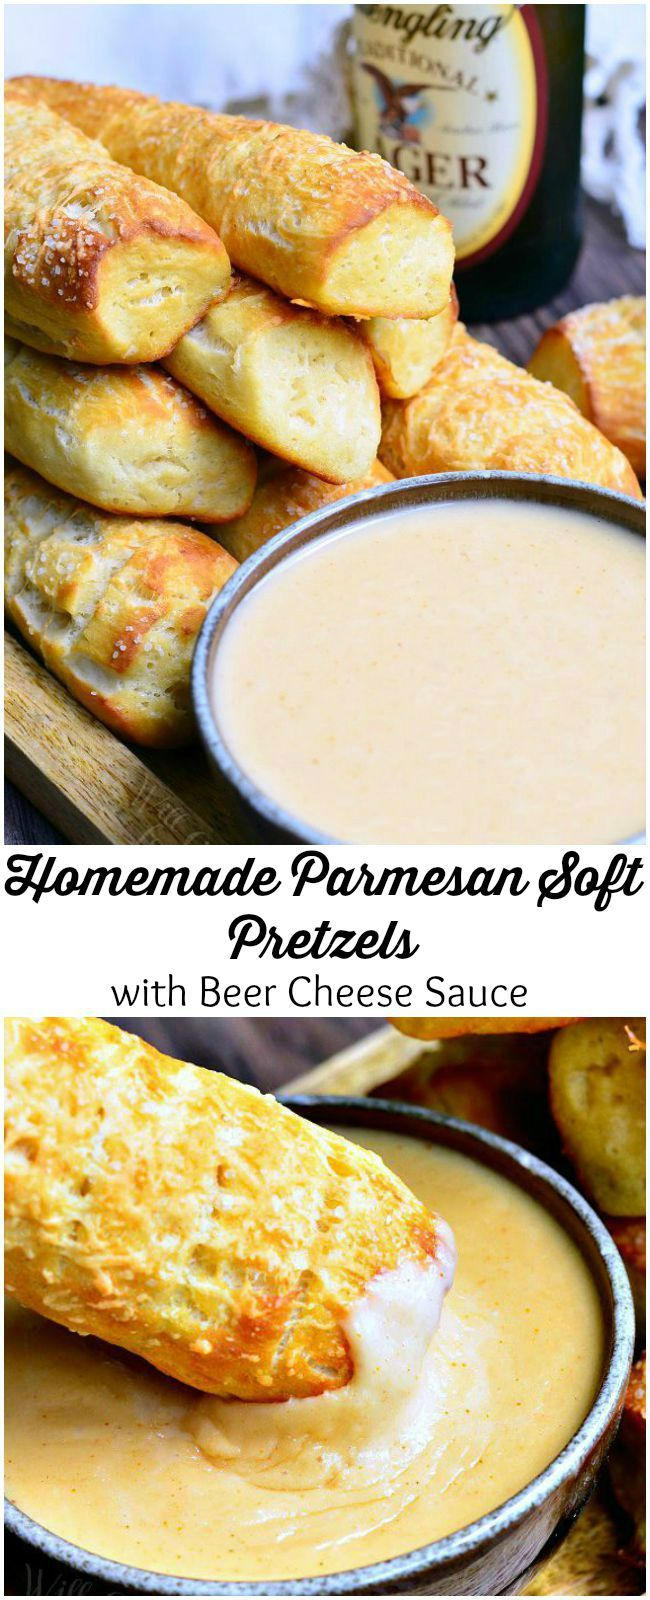 Homemade Parmesan Soft Pretzel Sticks with Beer Cheese Sauce 5 from willcookforsmiles.com